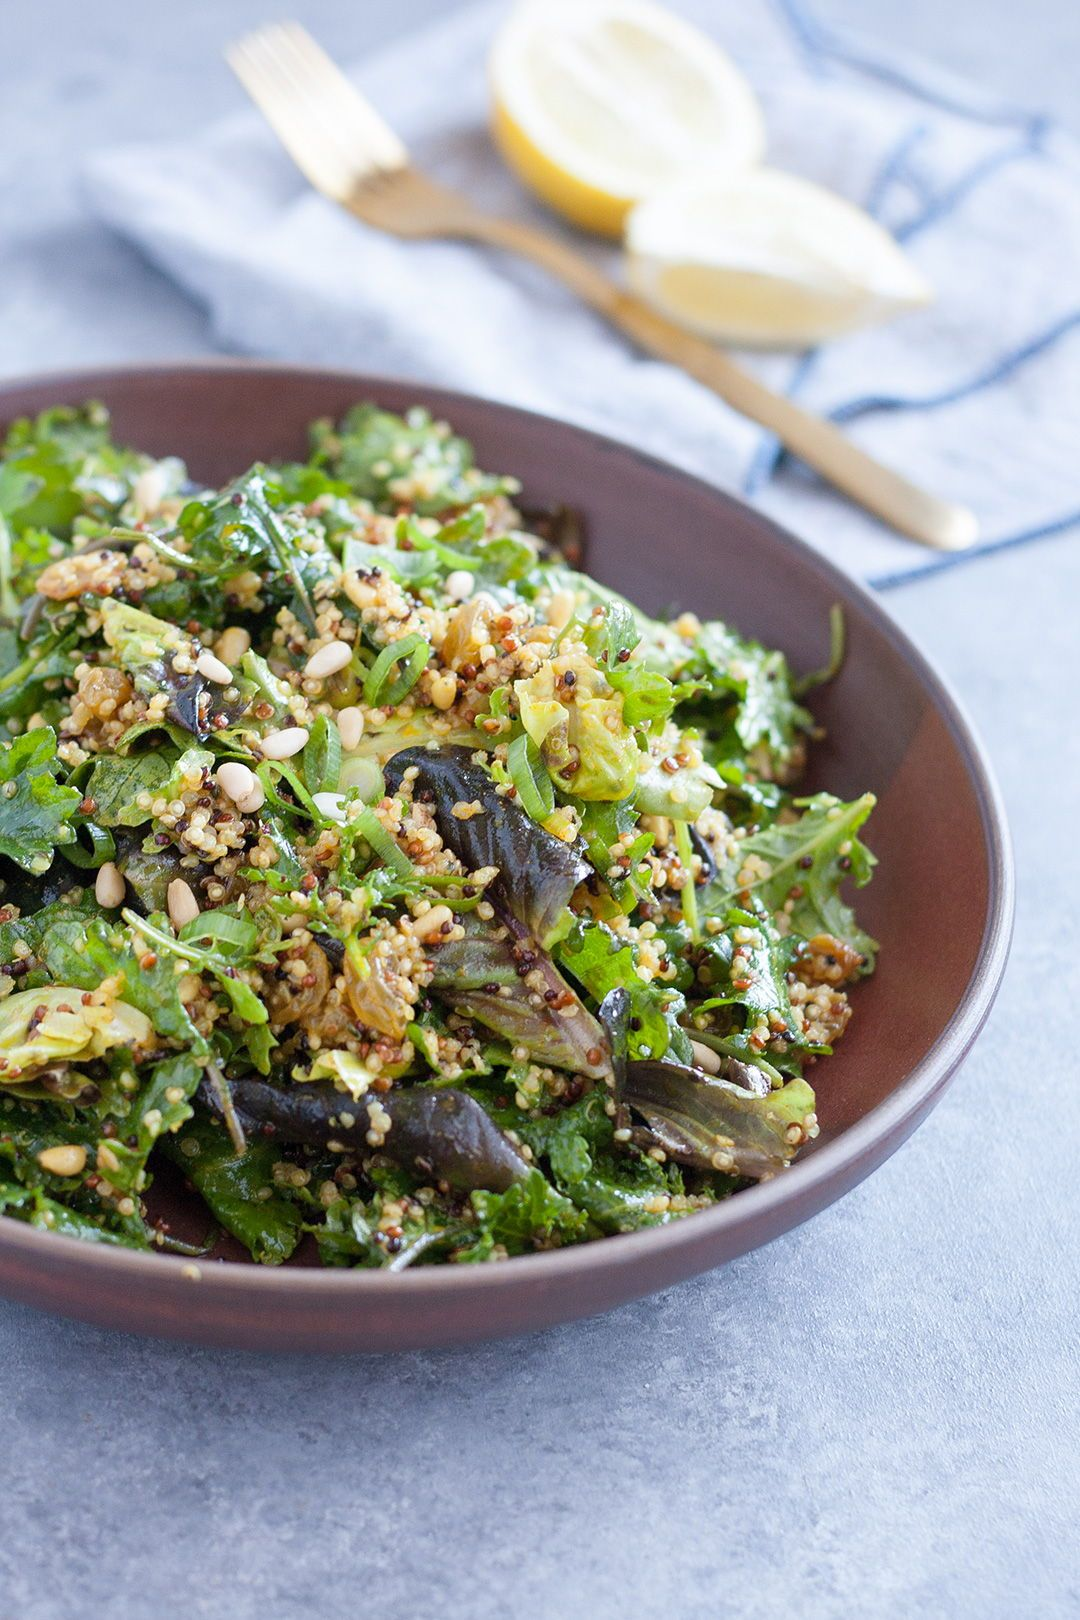 Kale Salad With Golden Turmeric Dressing